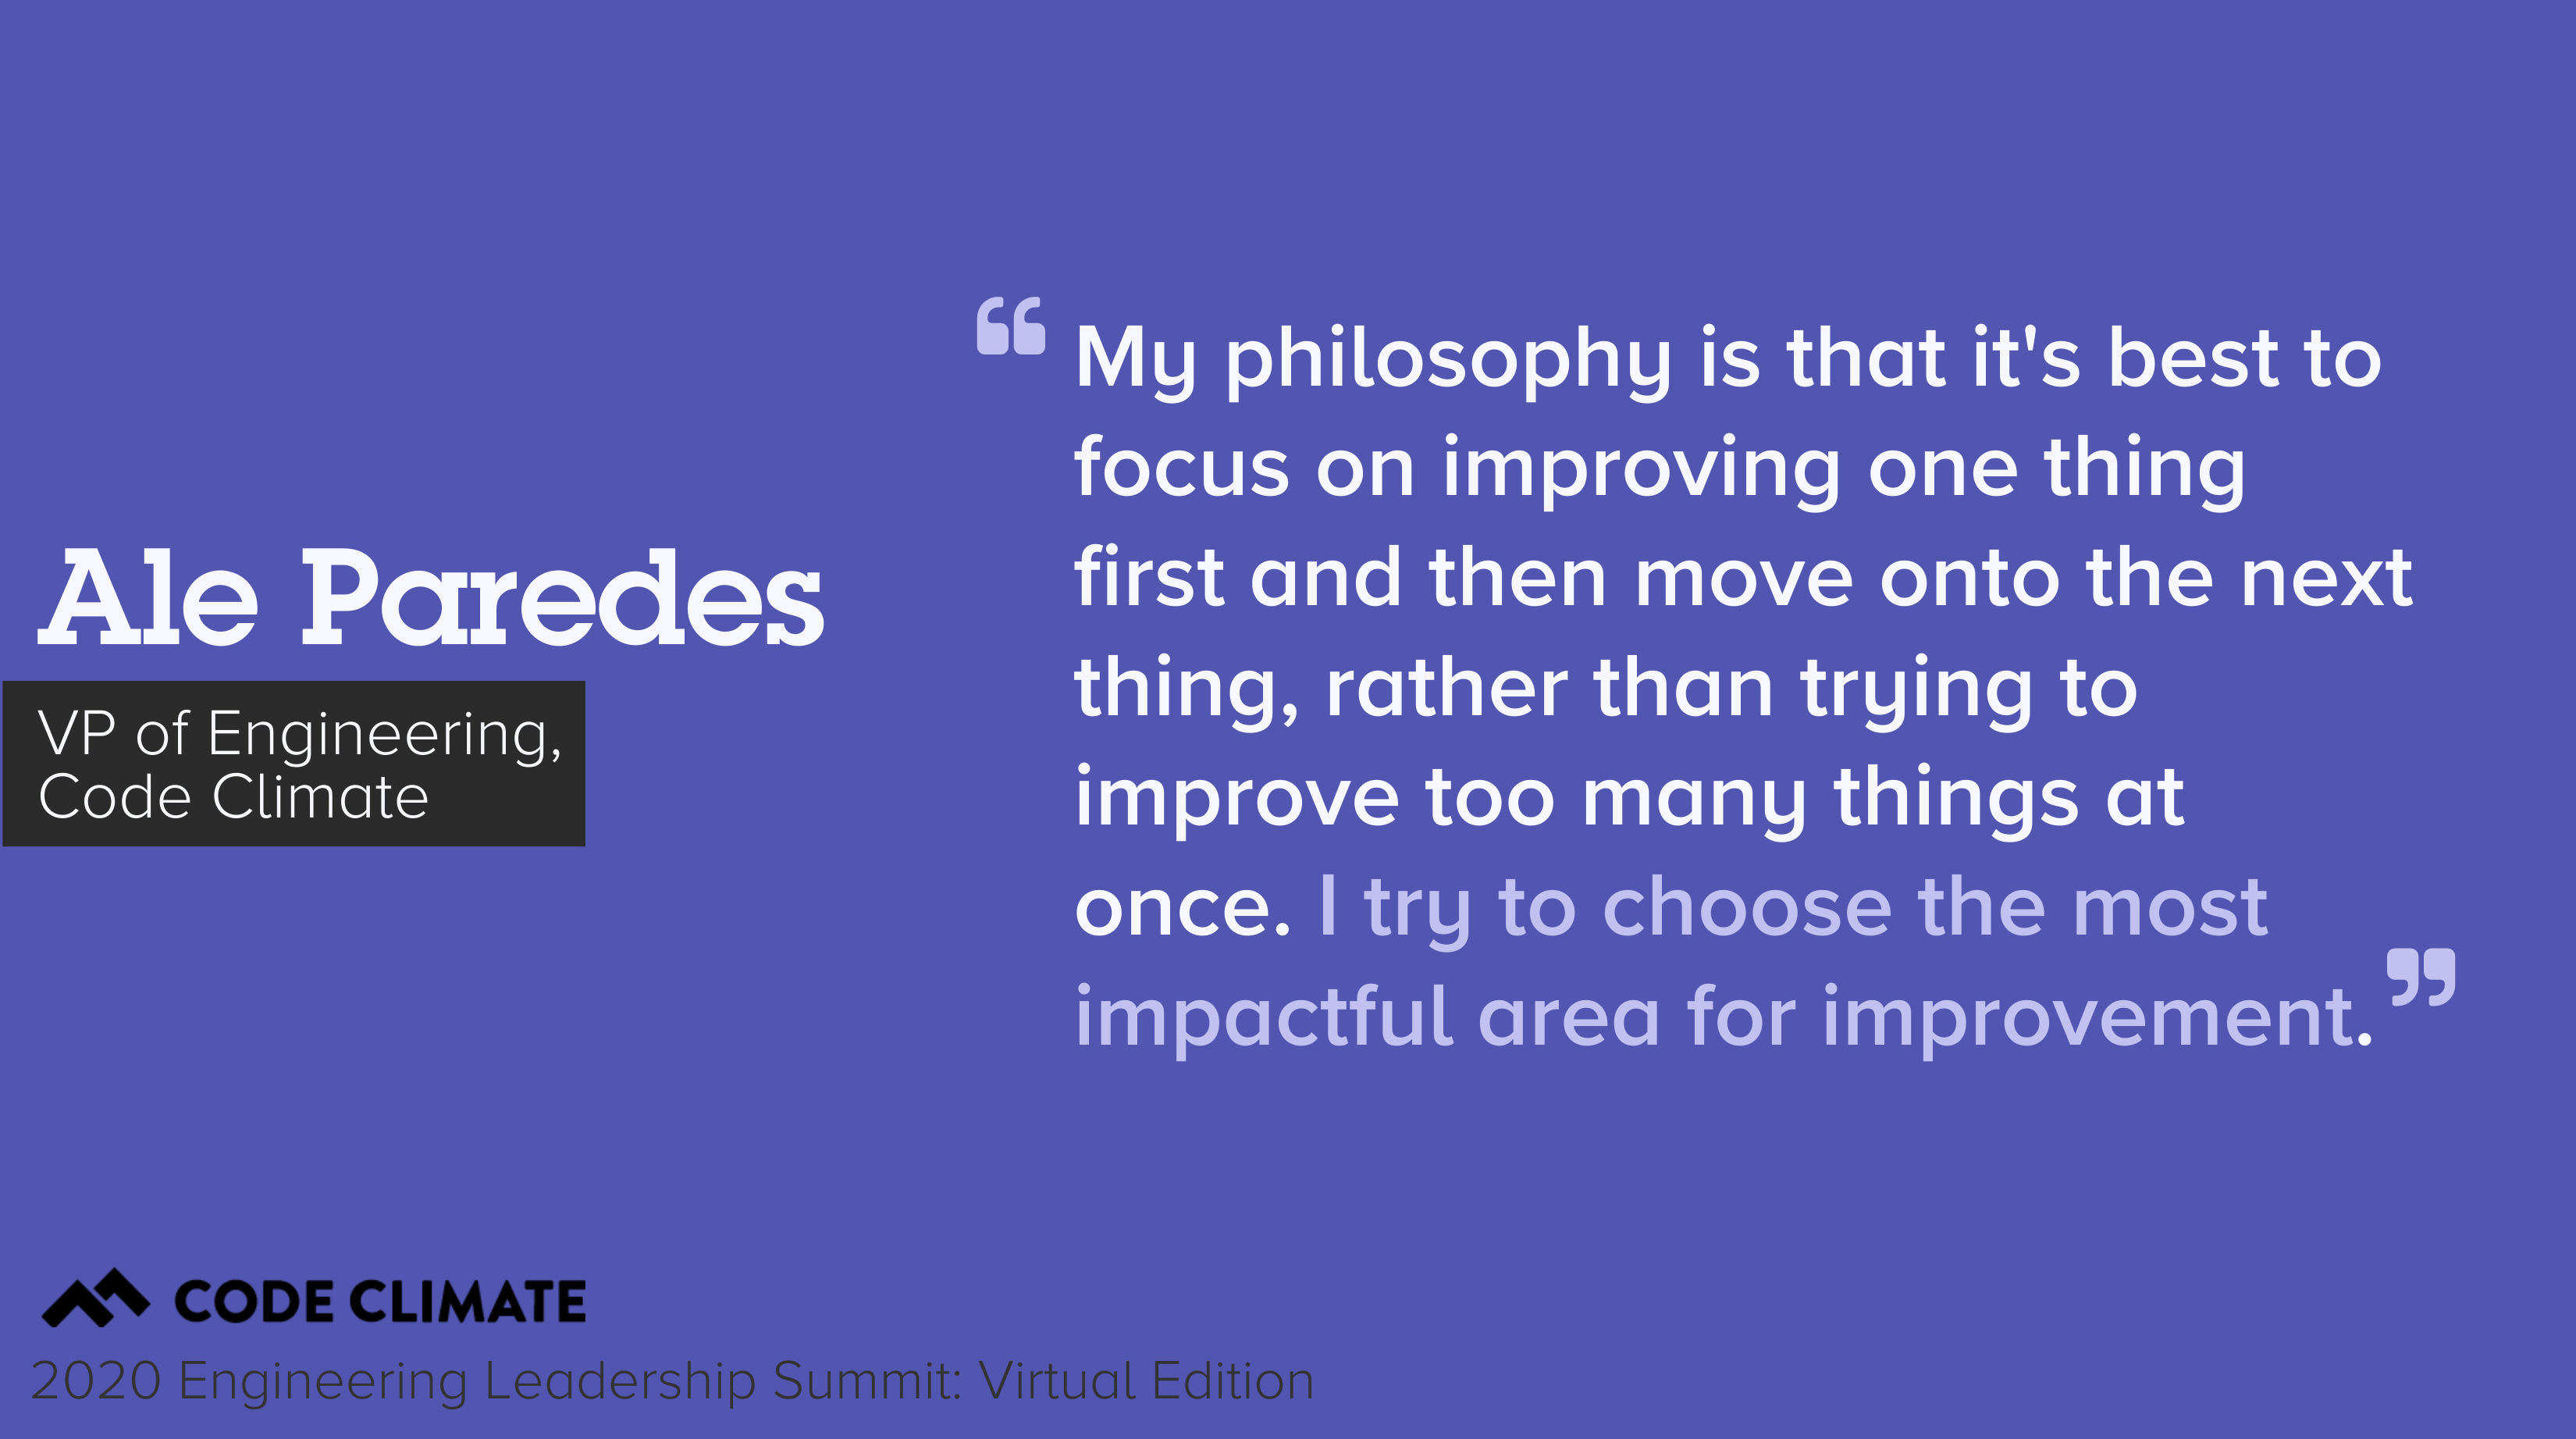 ale quote about impactful metrics